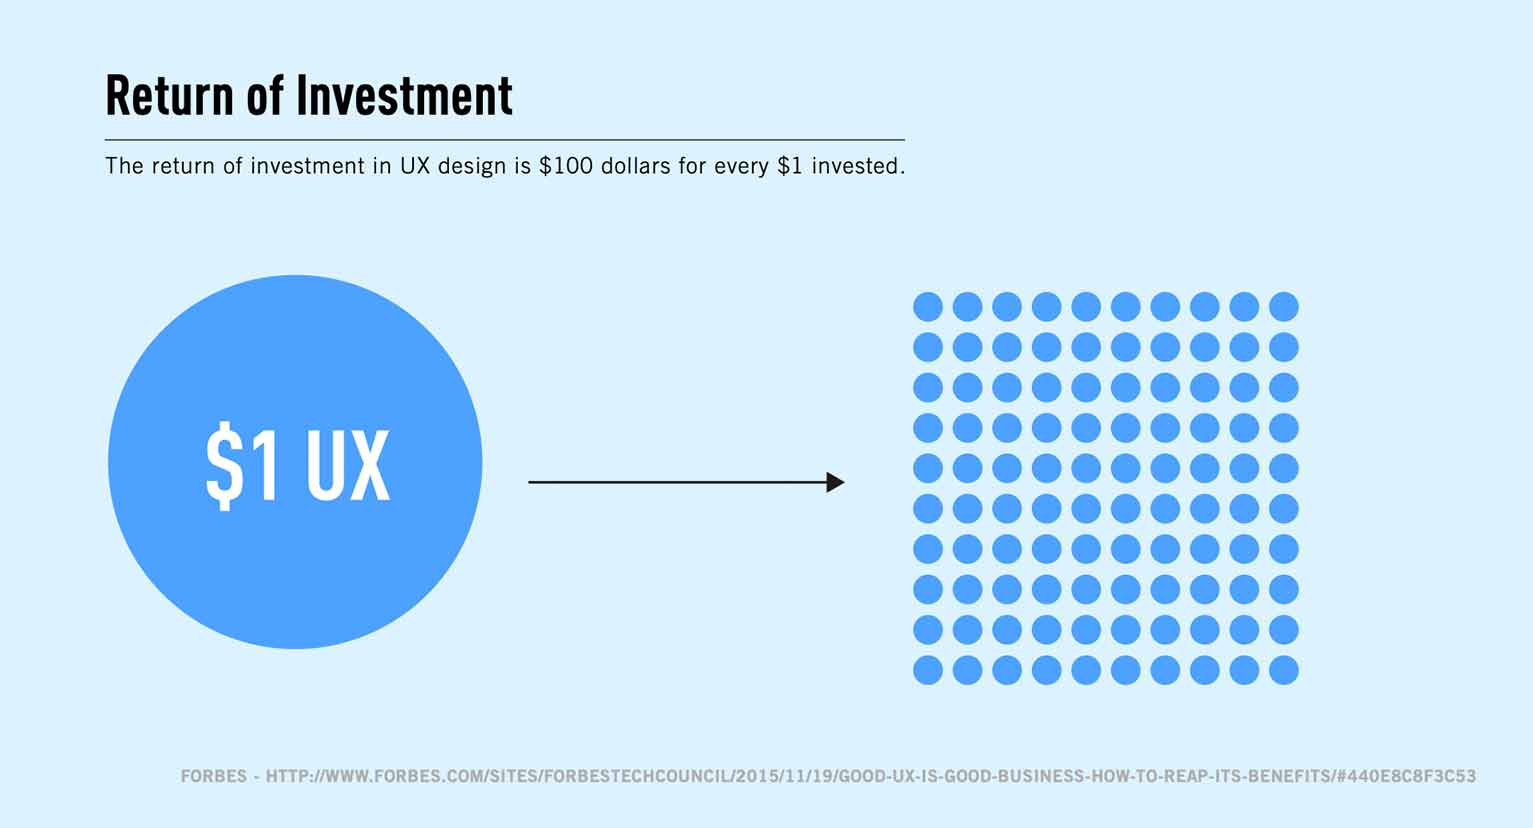 Graphic showing that the return on investment from UX design is $100 for every $1.